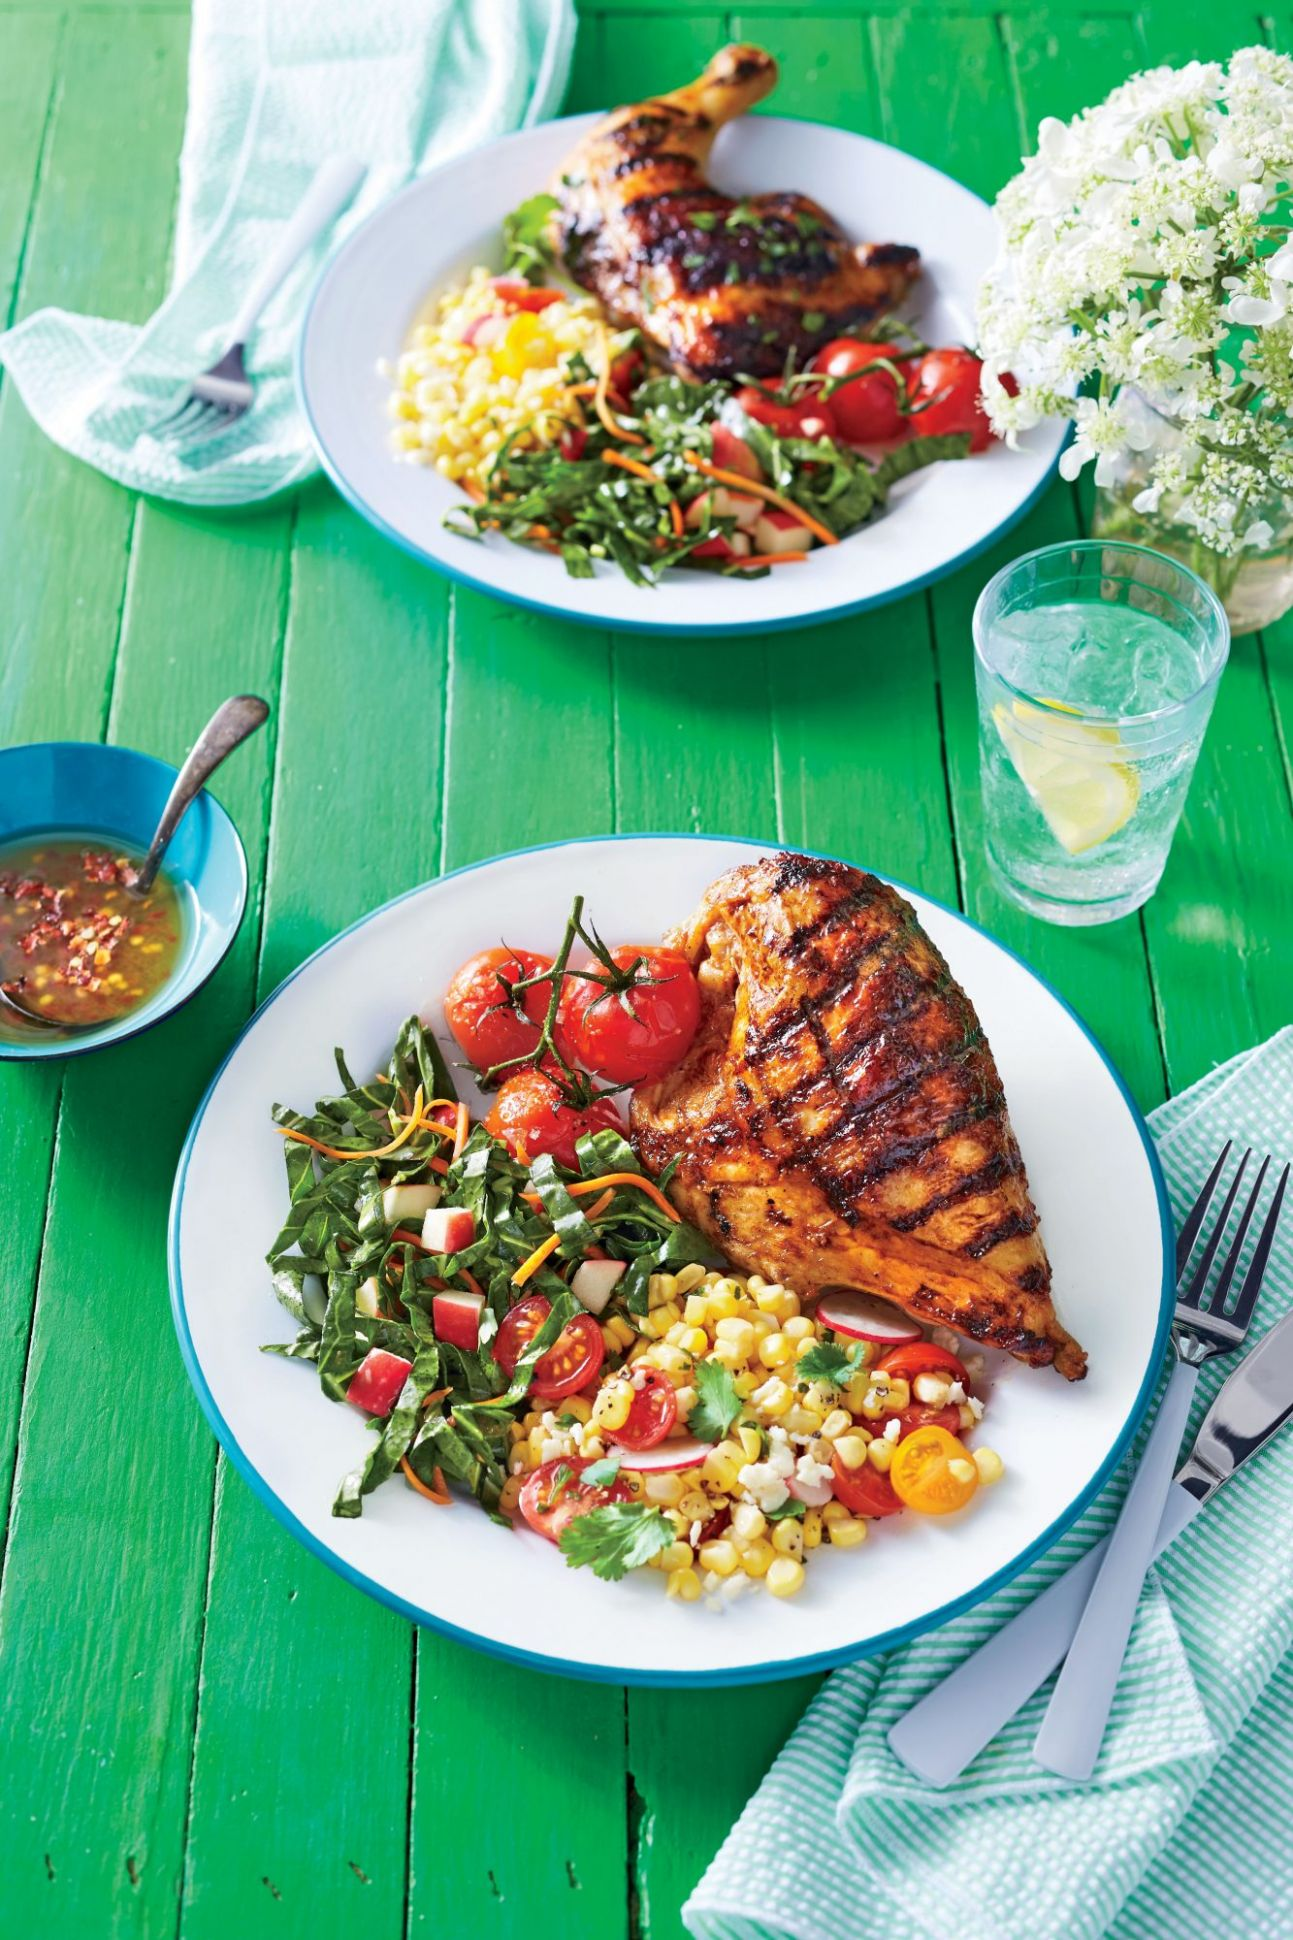 12 Summer Chicken Recipes the Whole Crowd Will Love | Southern Living - Summer Recipes For A Crowd